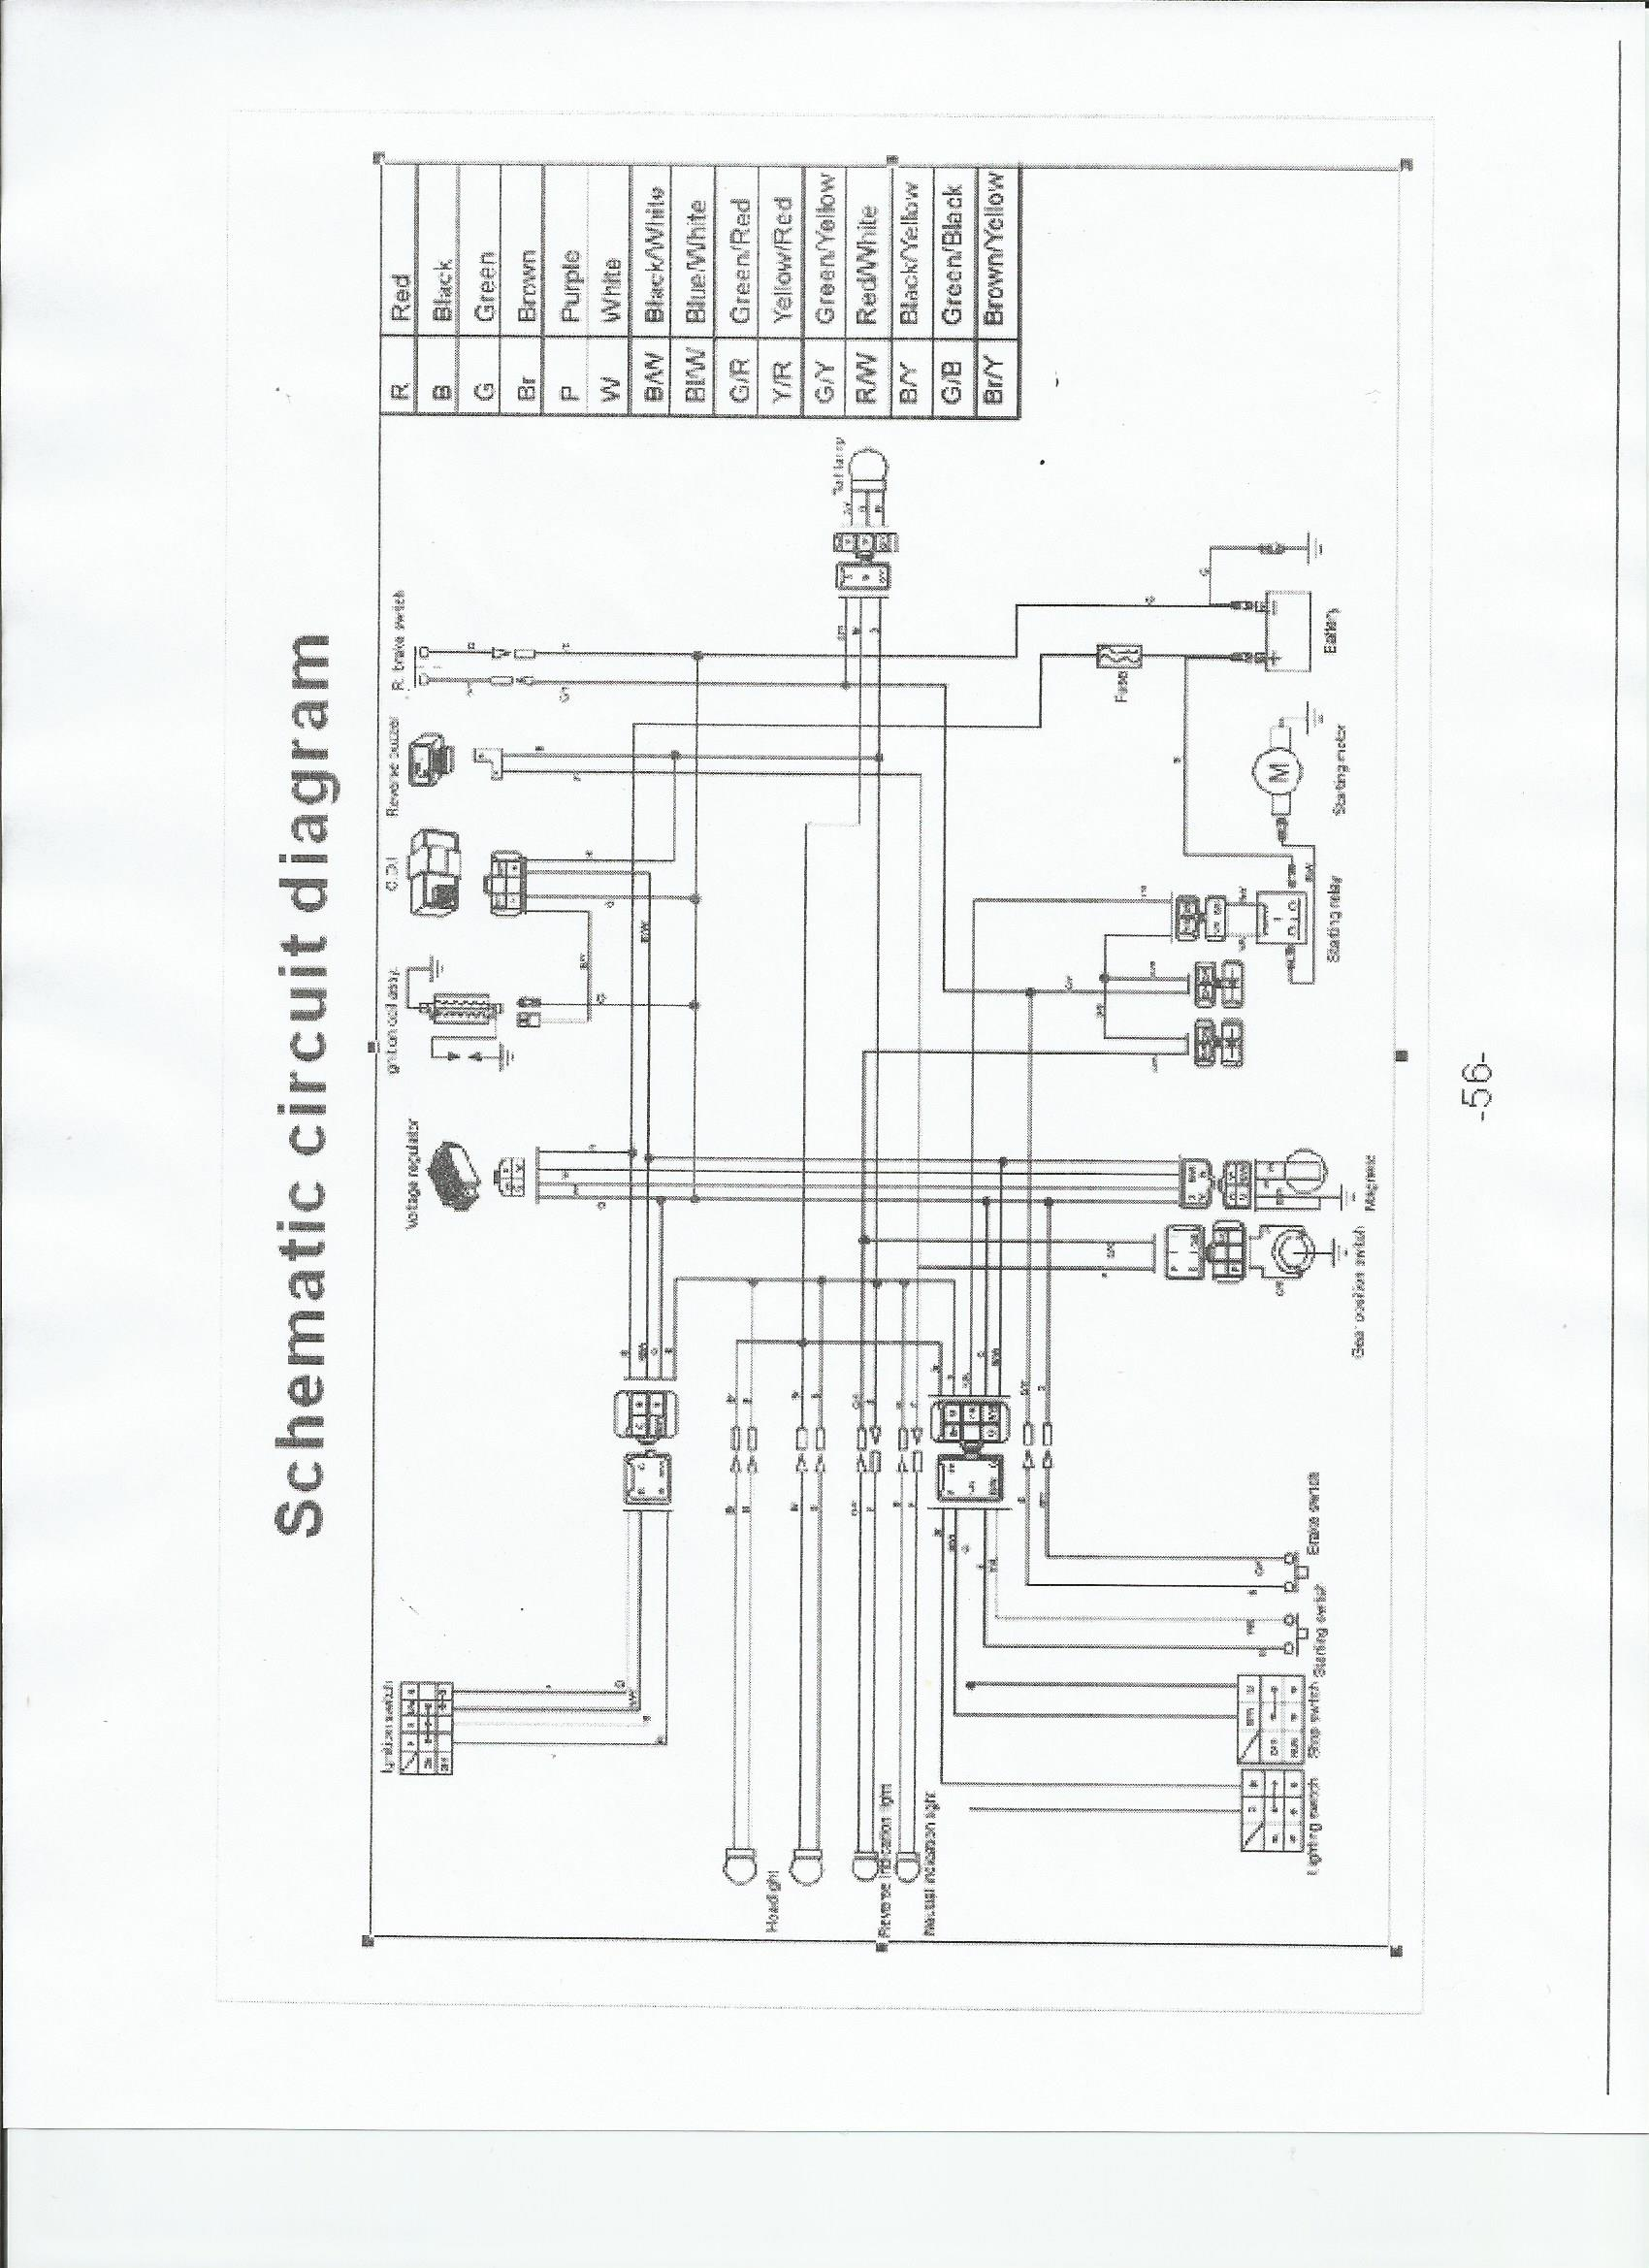 2002 honda 400ex carburetor diagram wiring schematic electrical ltr450 wiring  diagram 400ex headlight wiring diagram 30